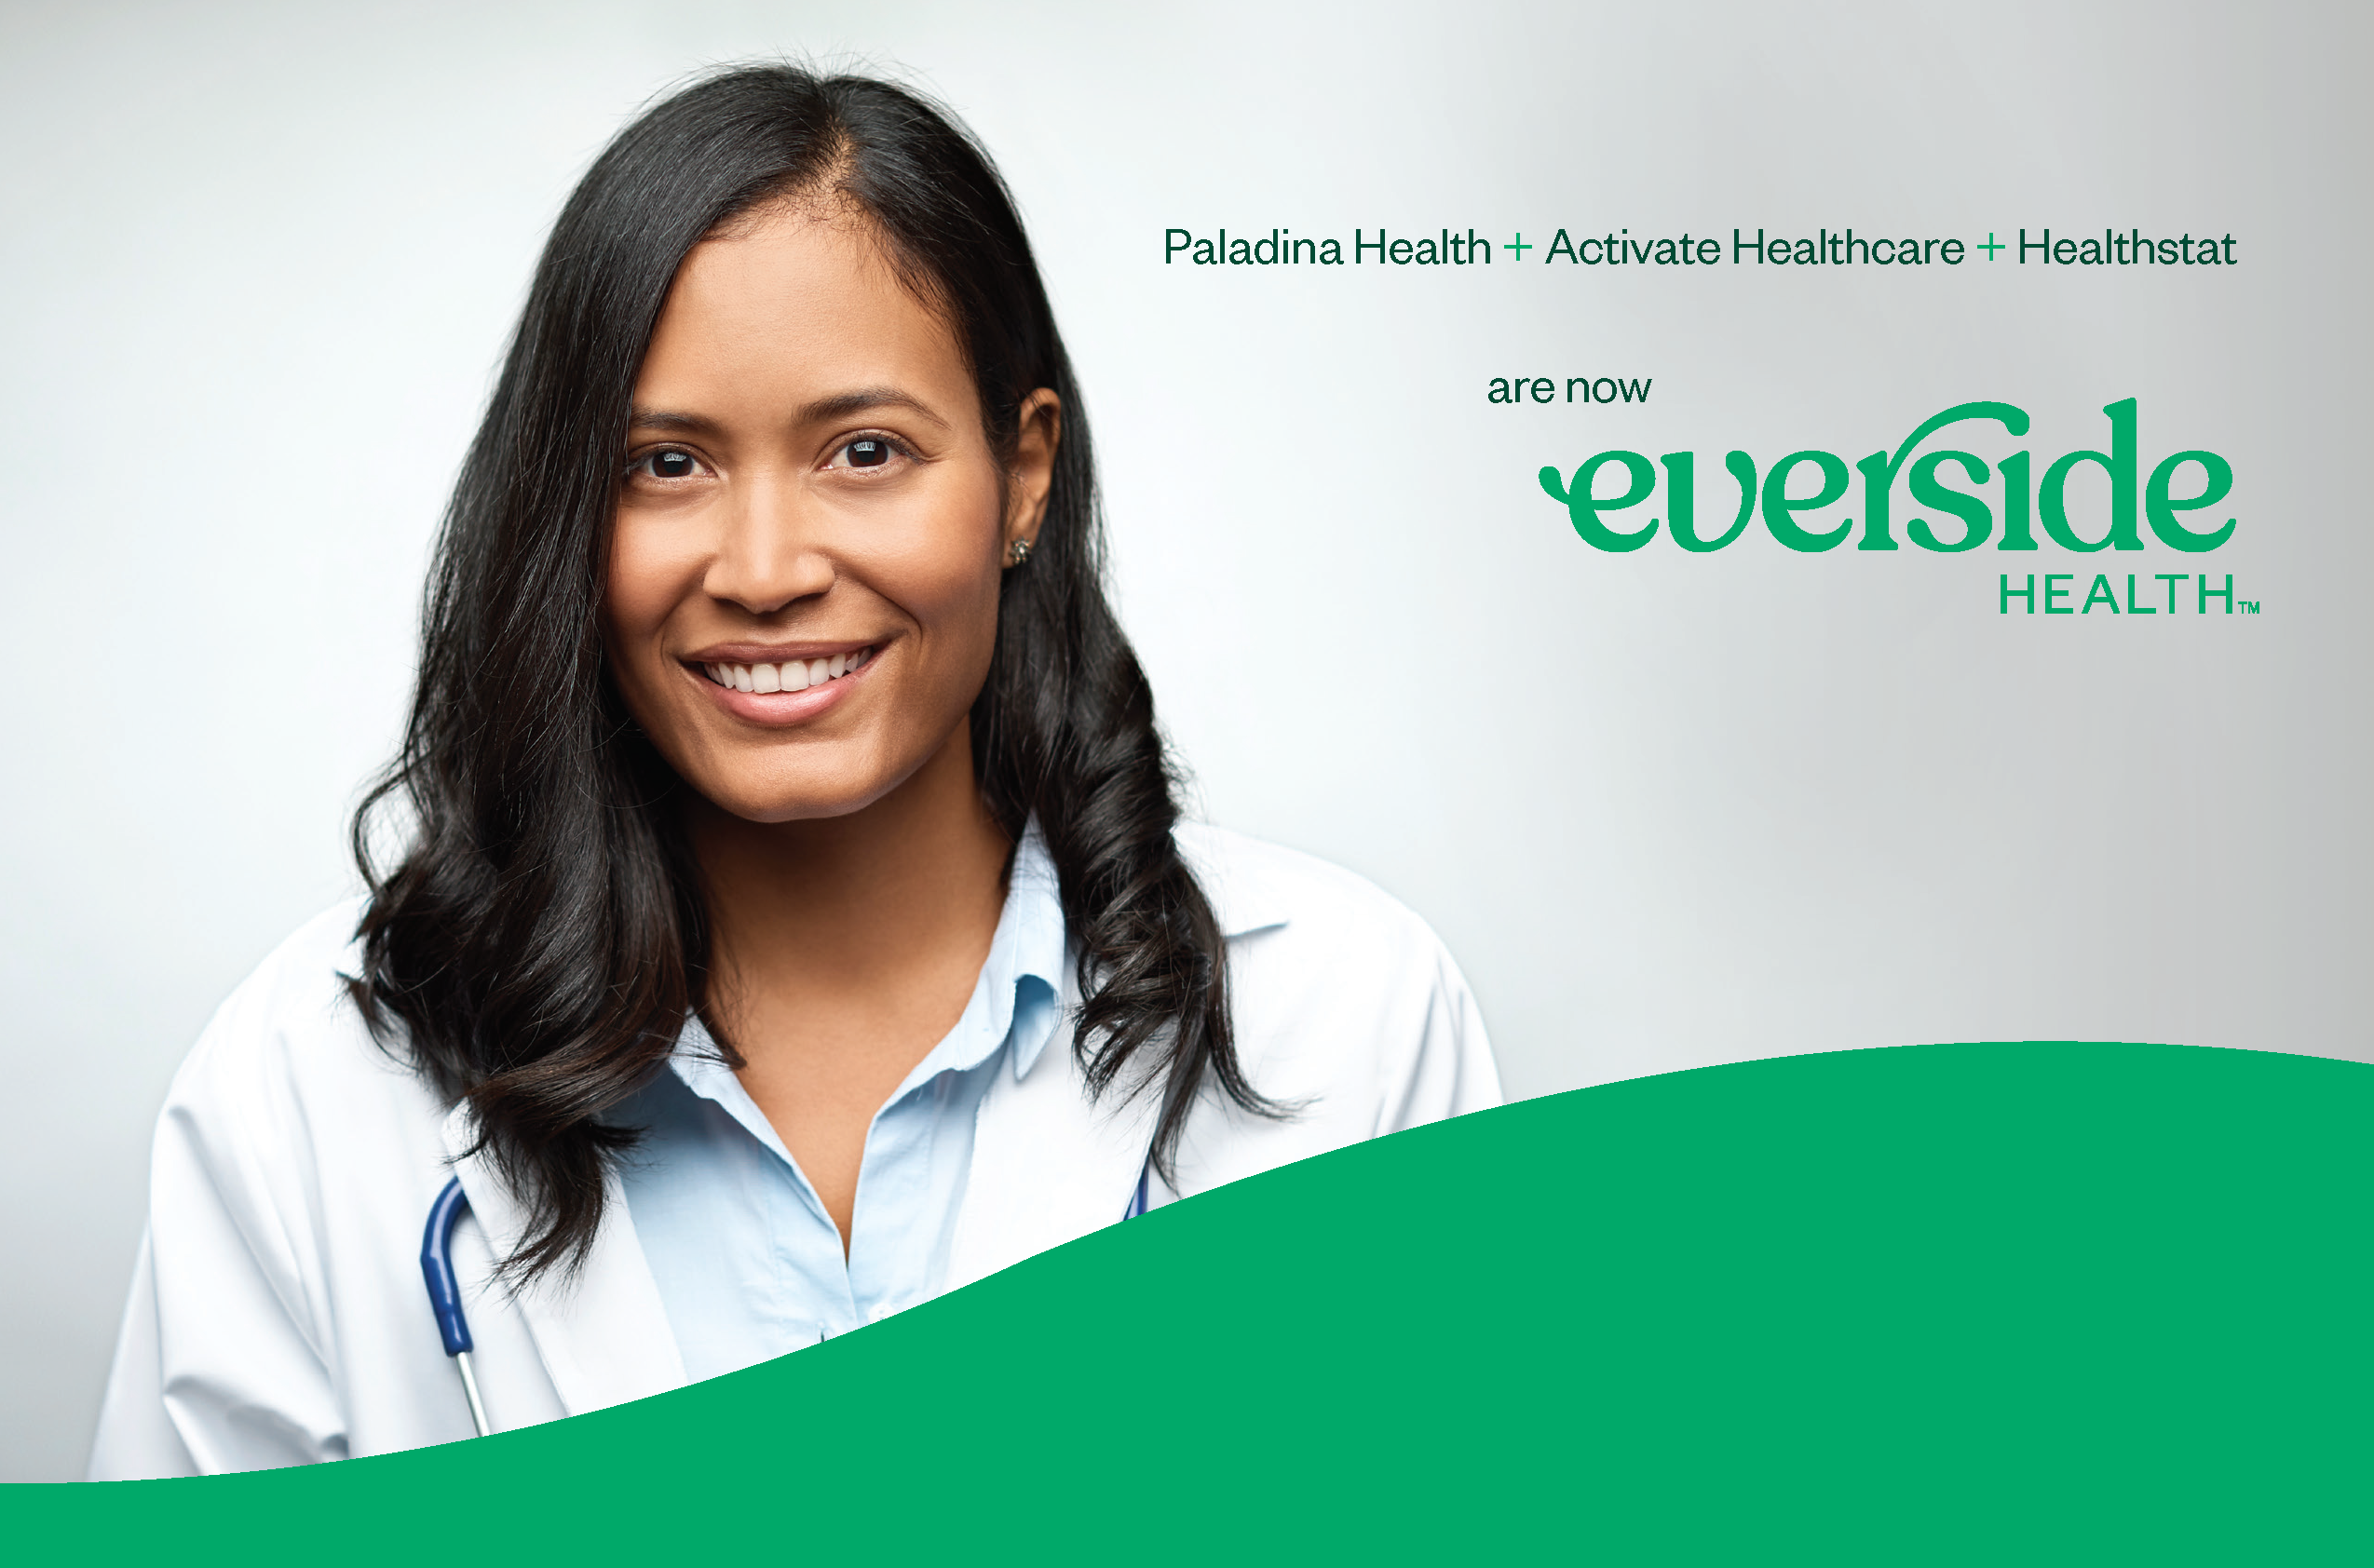 Paladina Health + Activate Healthcare + Healthstat are now Everside Health